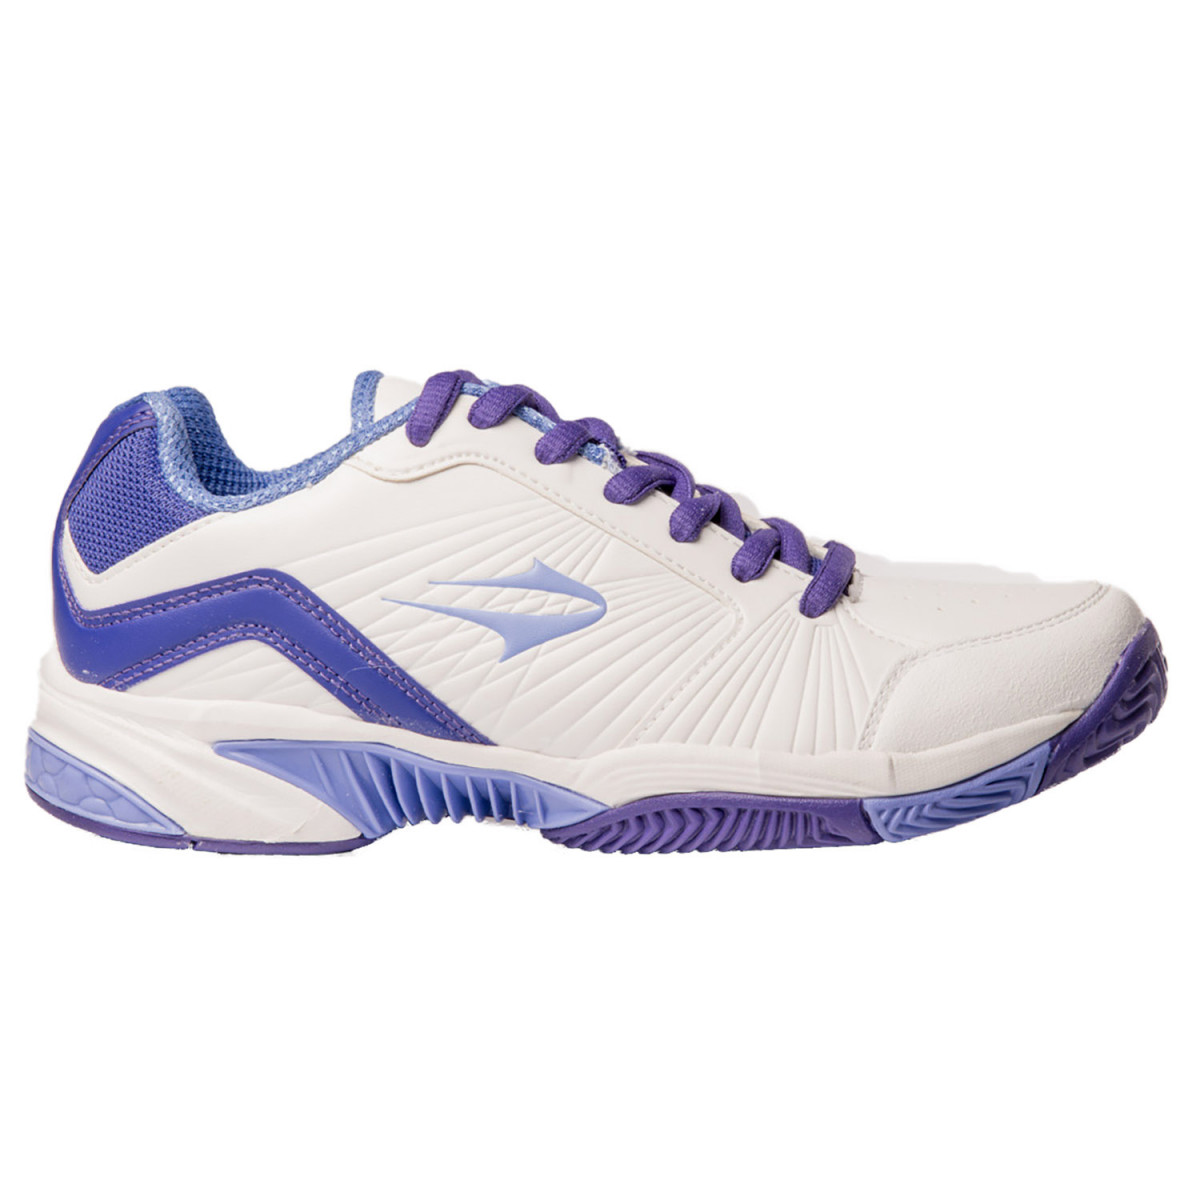 Zapatillas Topper Lady Overpass IV